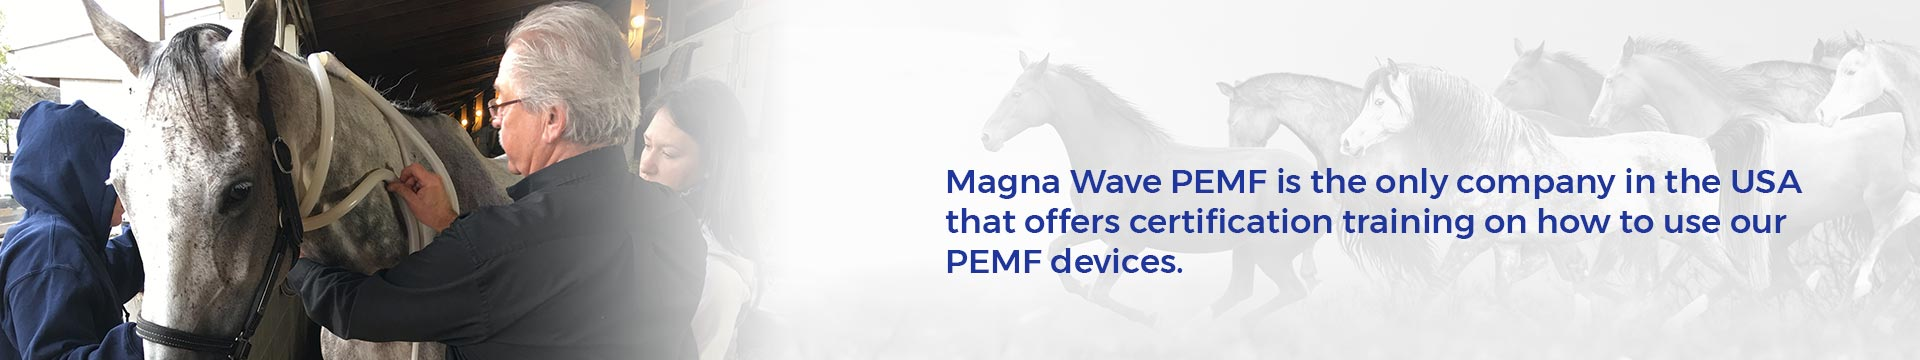 Magna Wave PEMF is the only company in the USA that offers certification training on how to use our PEMF devices.